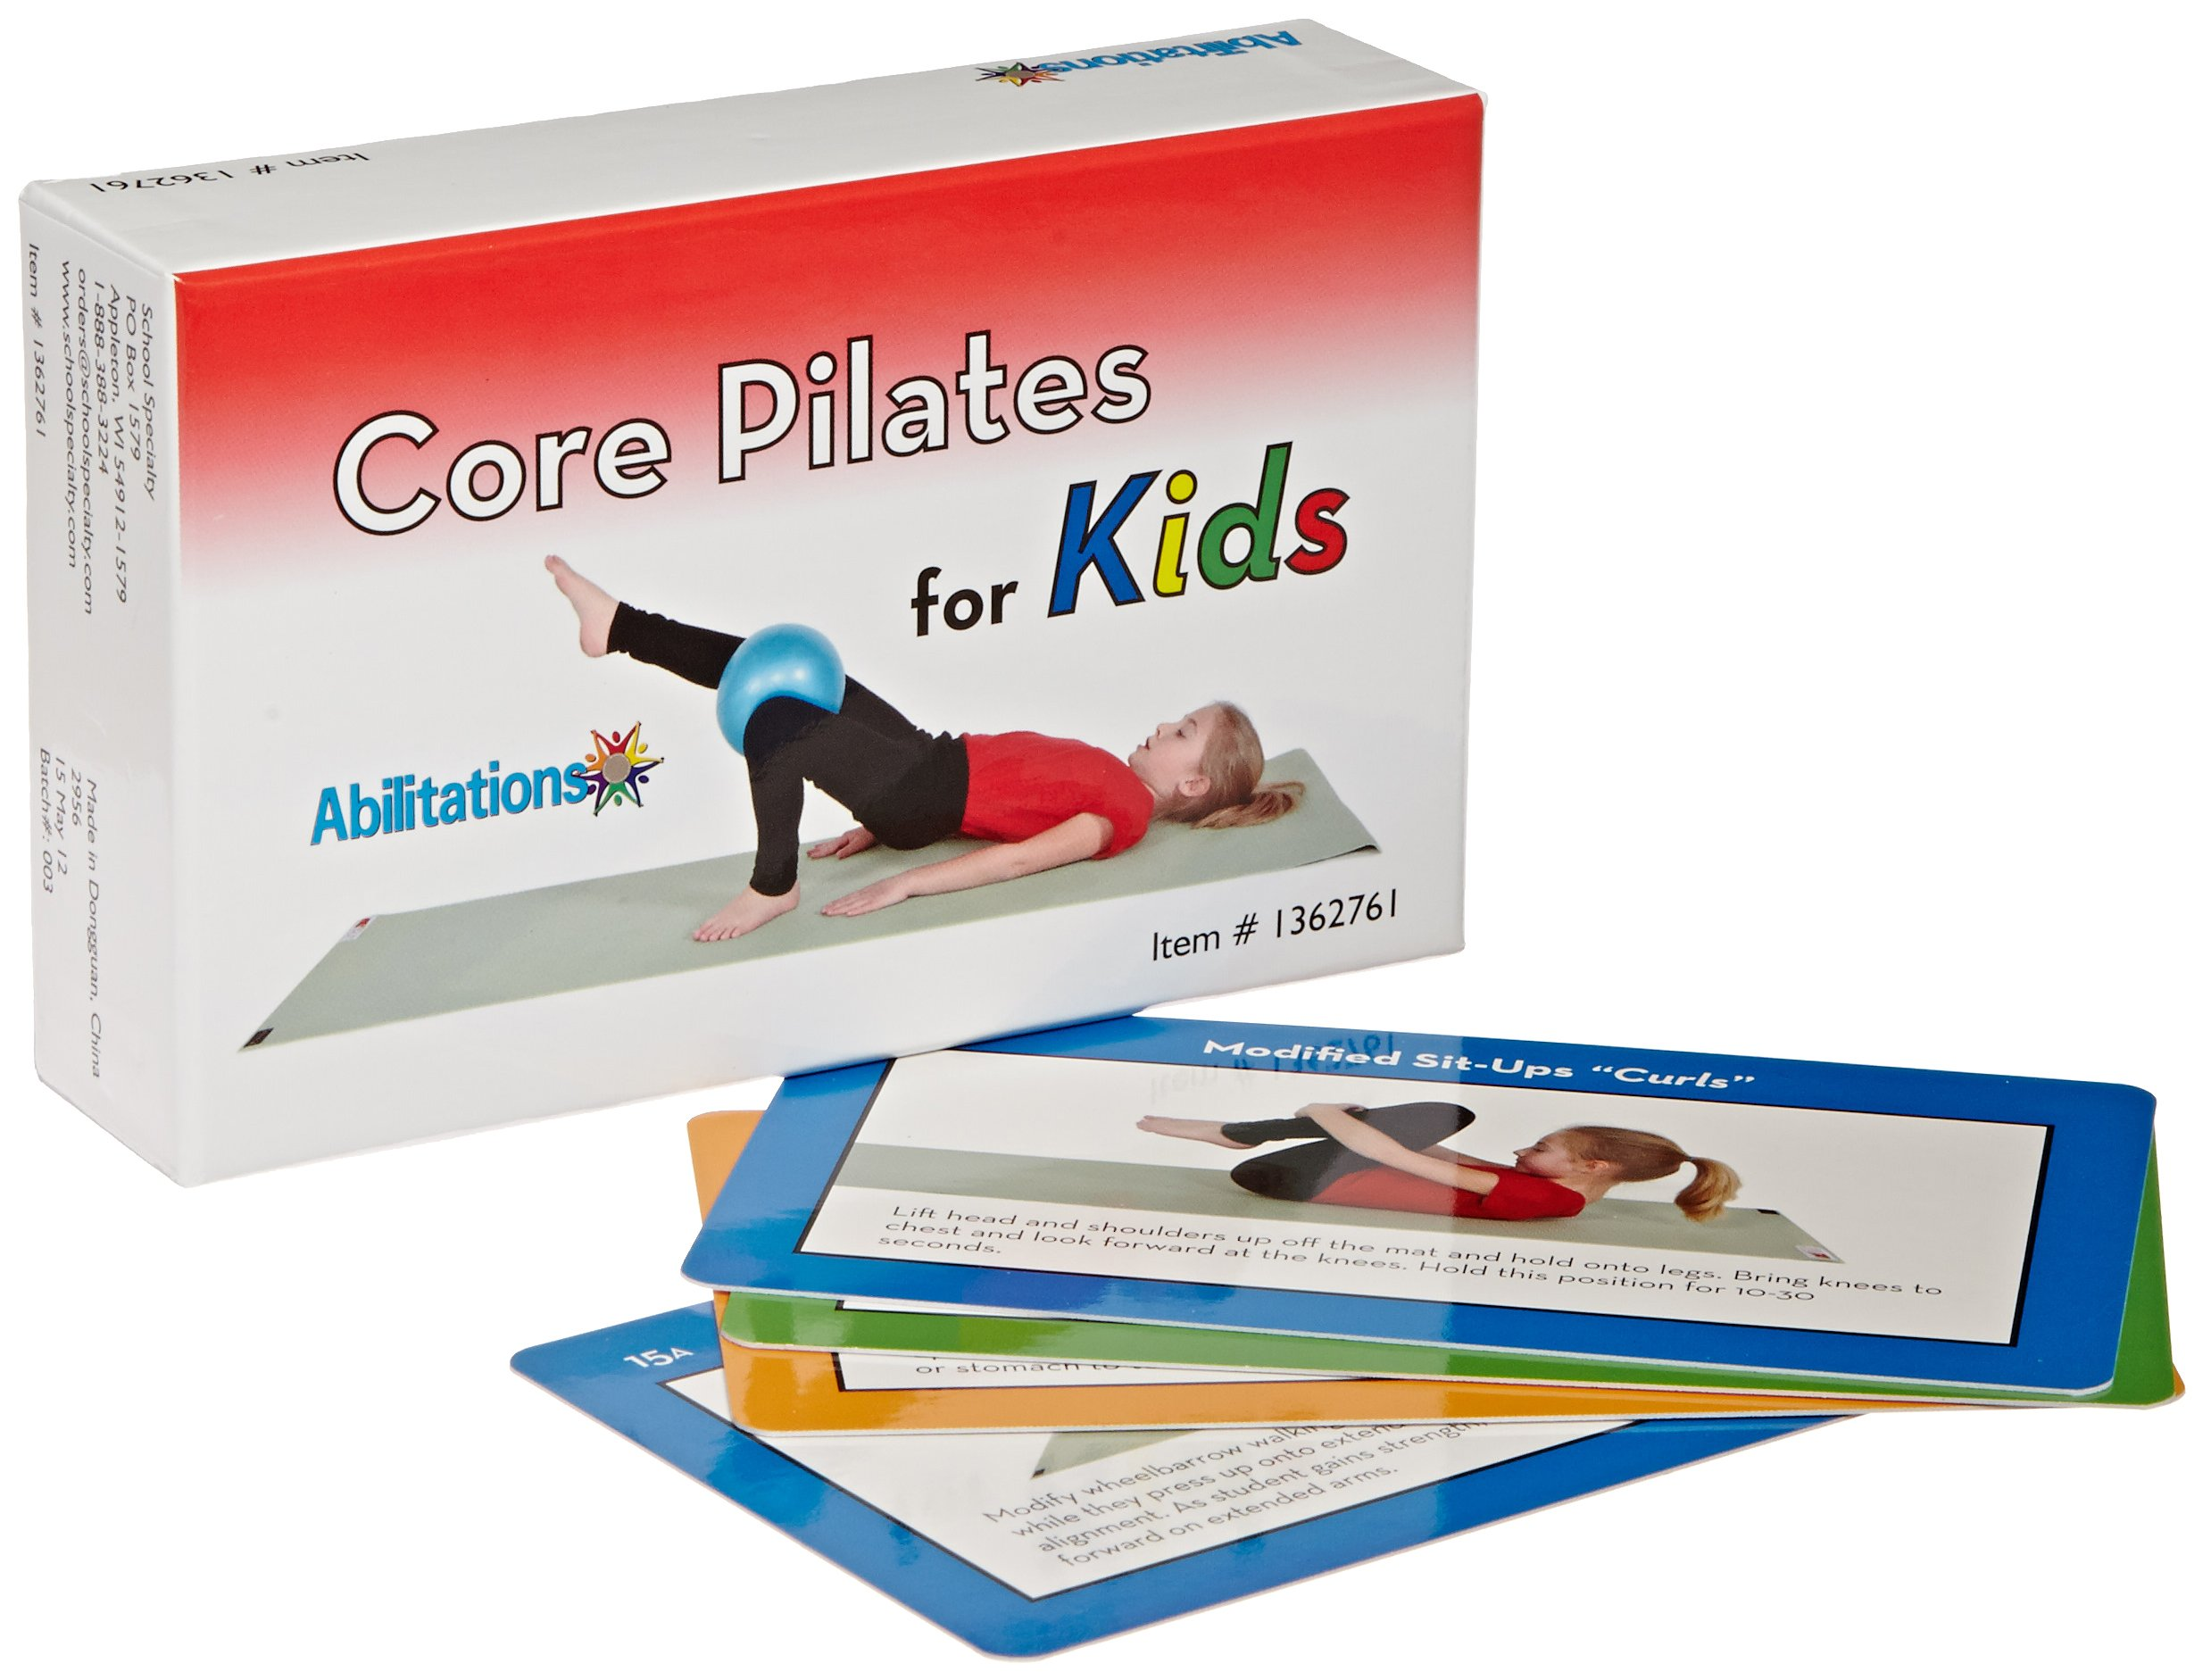 Sportime Core Pilates for Kids Exercise Cards, Set of 56 - 1362761 by Sportime